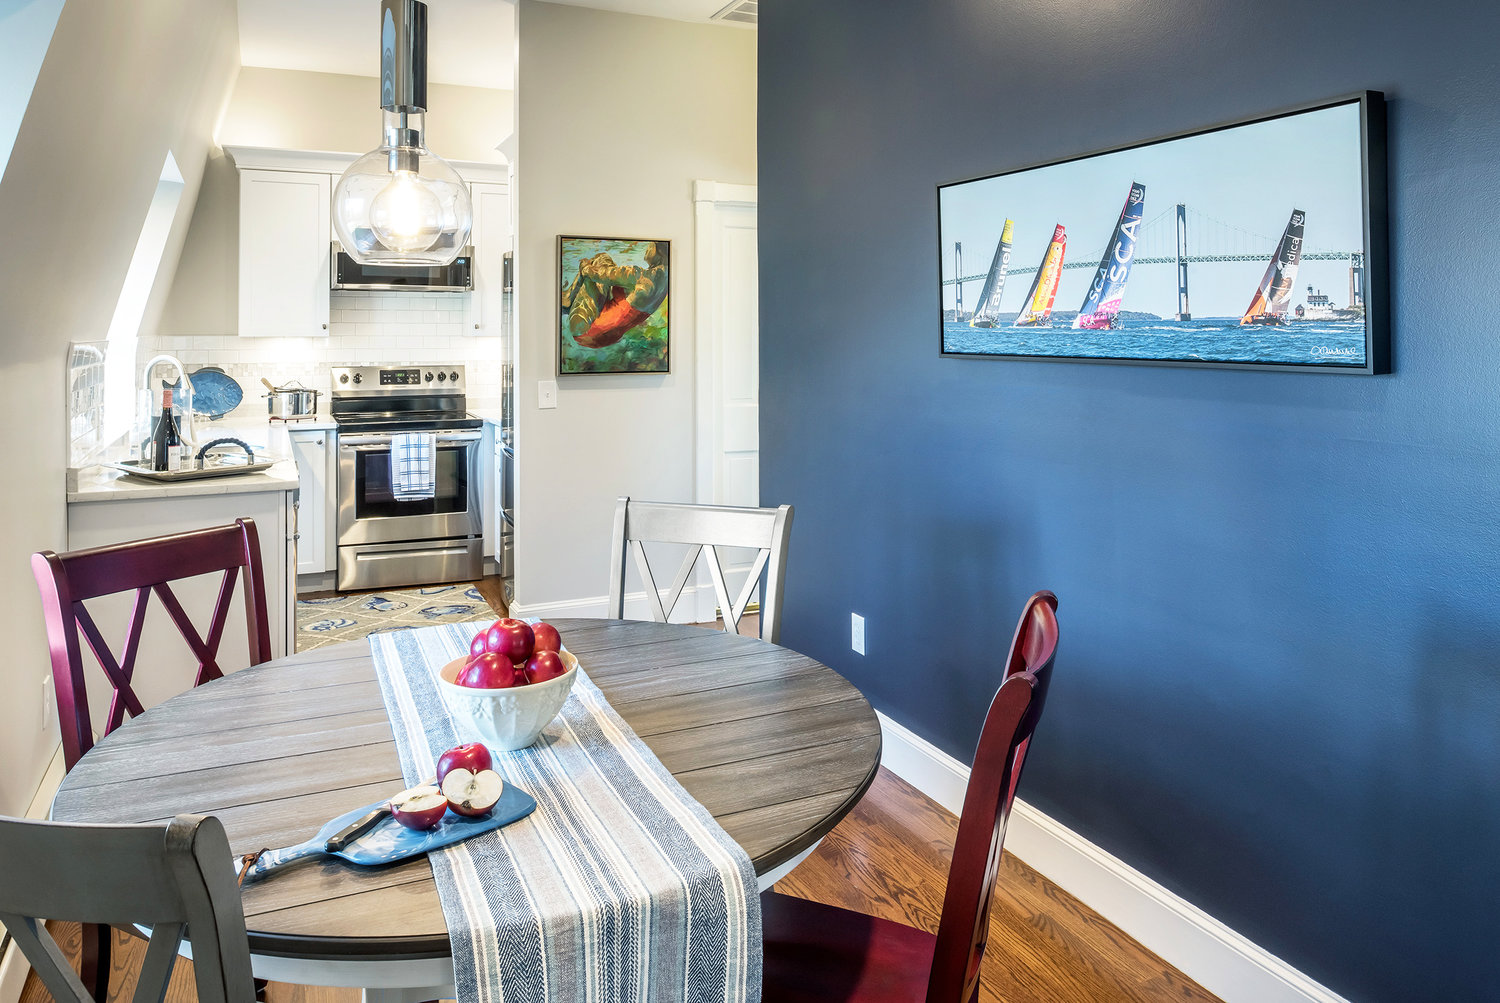 Touches of deep blue add coastal cohesion from room to room